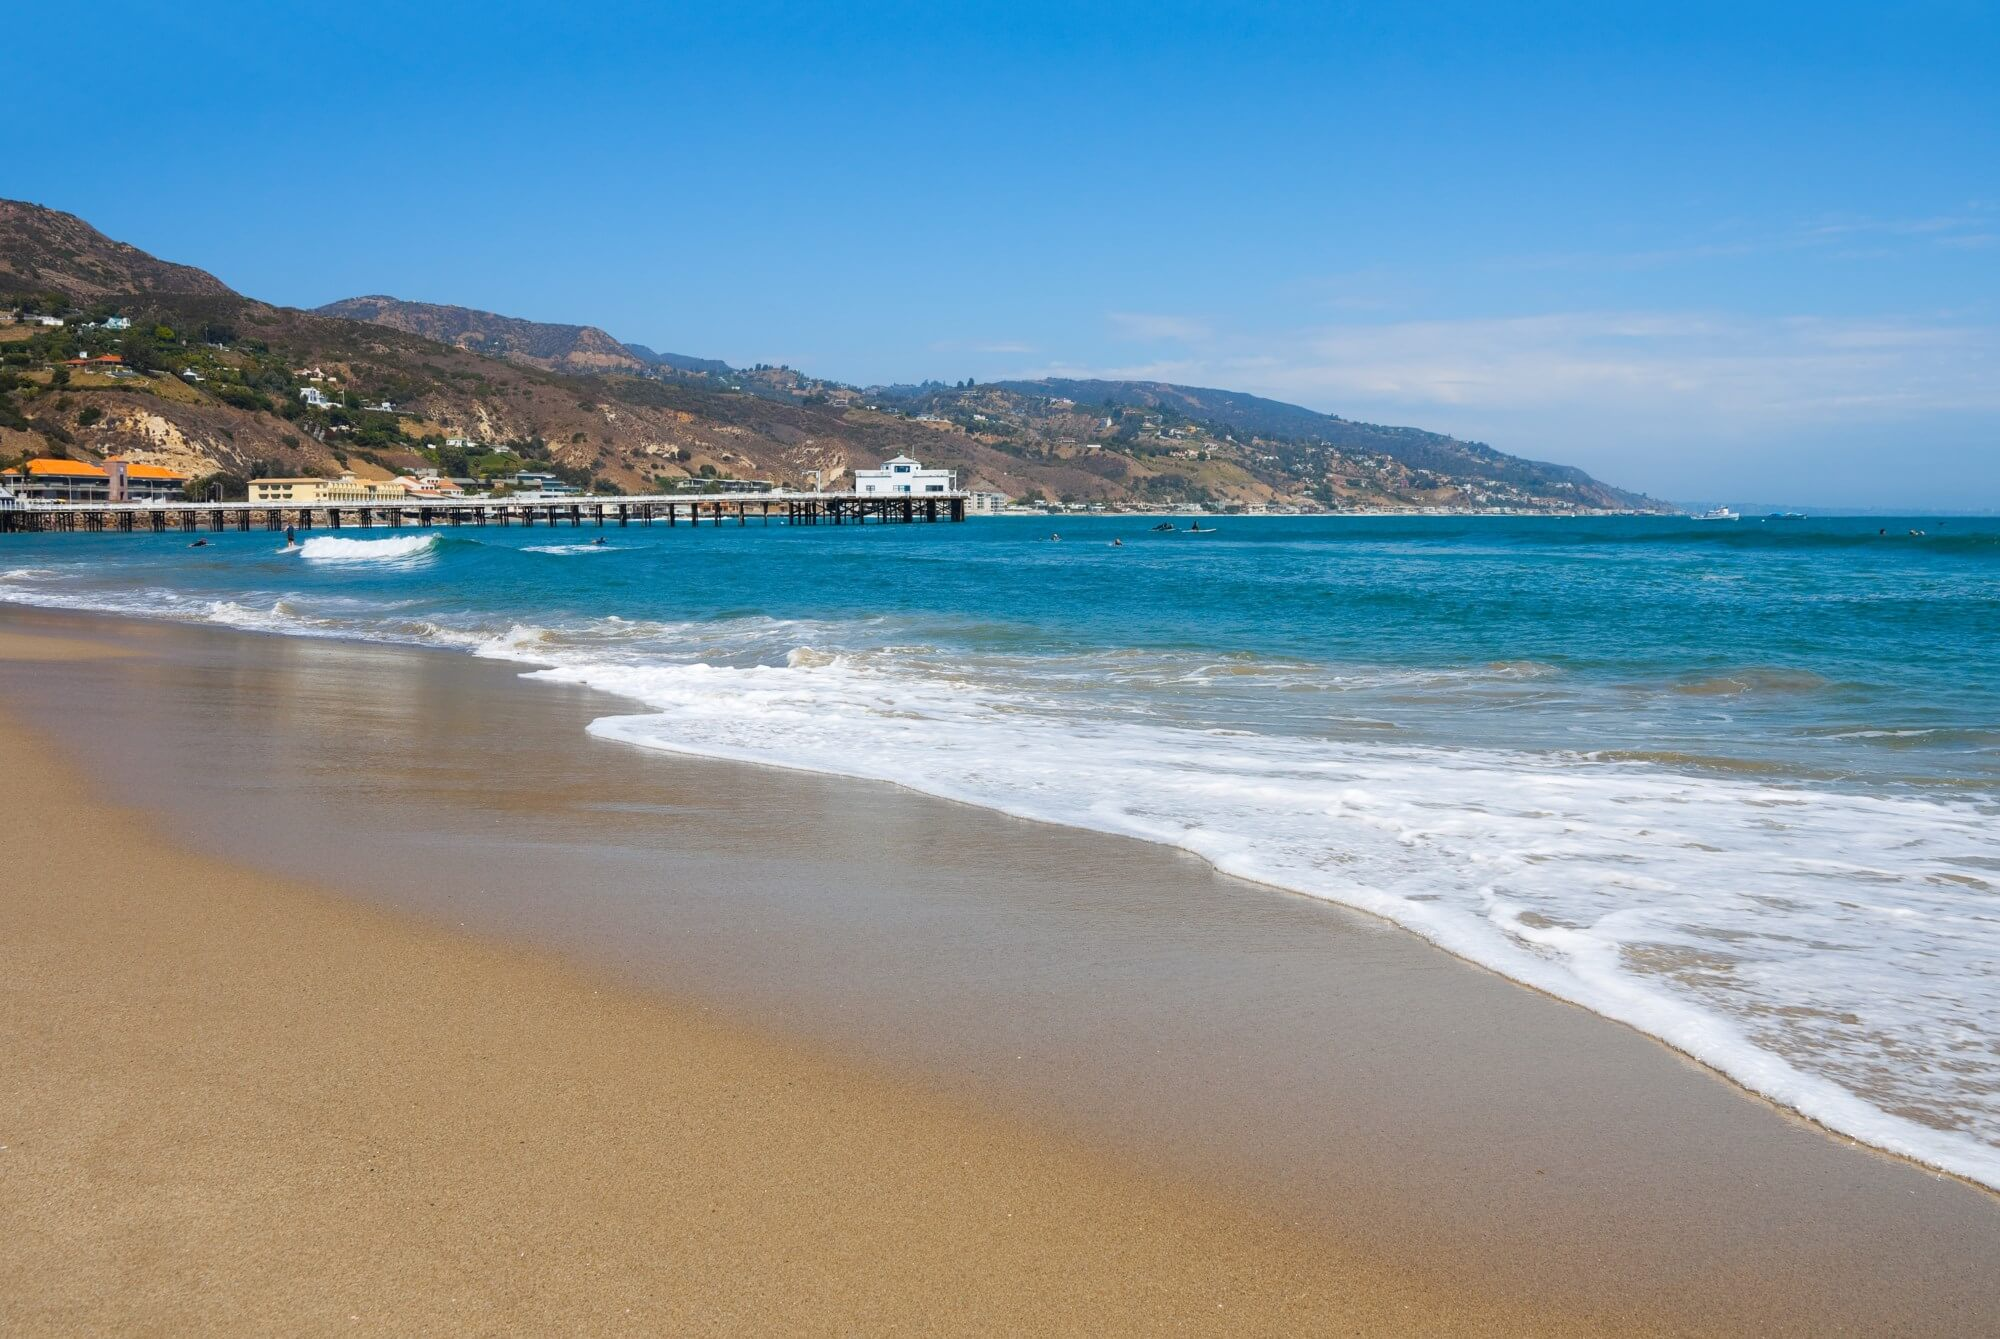 Malibu surfrider beach malibu ca california beaches for Best beach near la